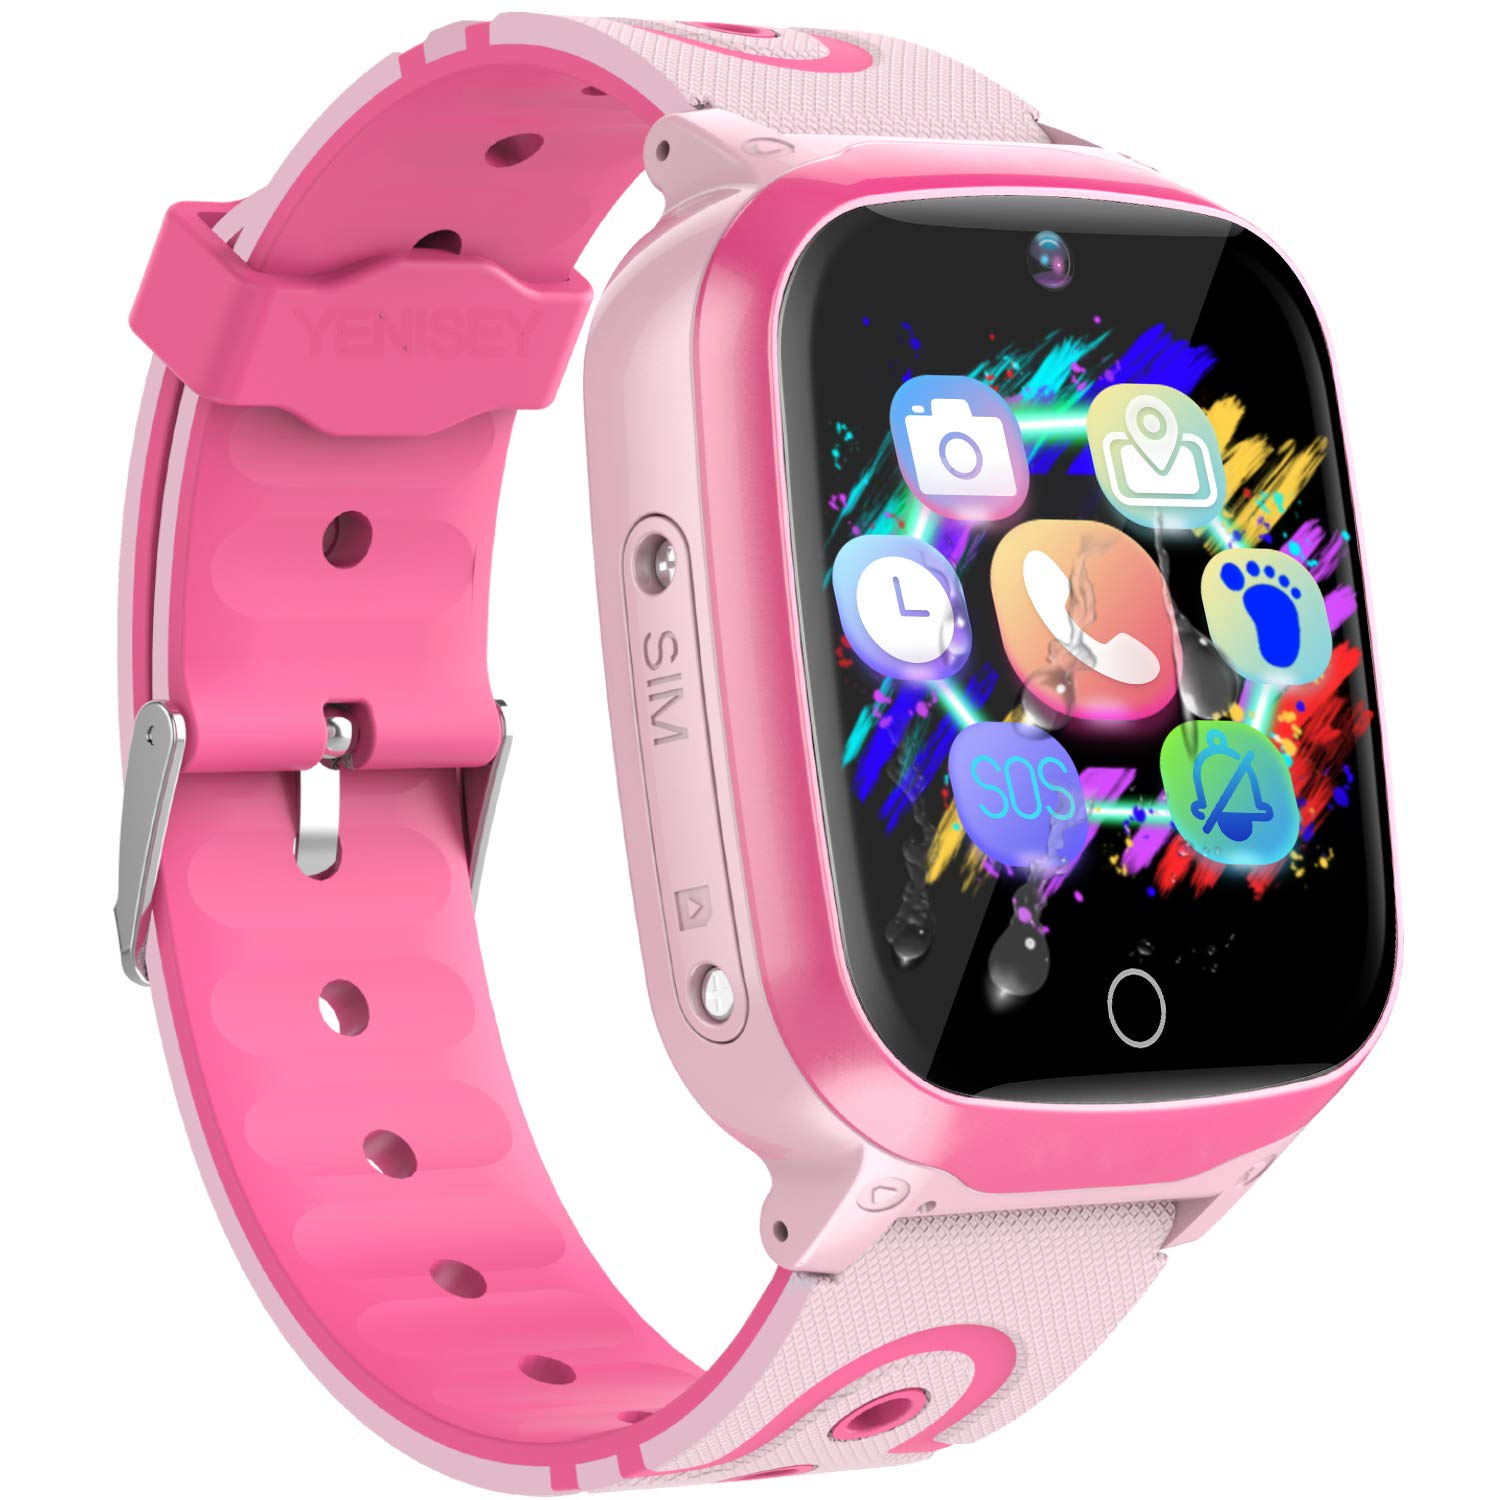 YENISEY Kids Smart Watches GPS Tracker - 12 Hrs Waterproof Smartwatch with 1.4'' Touch Screen WiFi GPS LBS Track SOS 2 Way Call Voice Chat Pedometer Health Fitness Watch for Boys Girls (Pink) by YENISEY